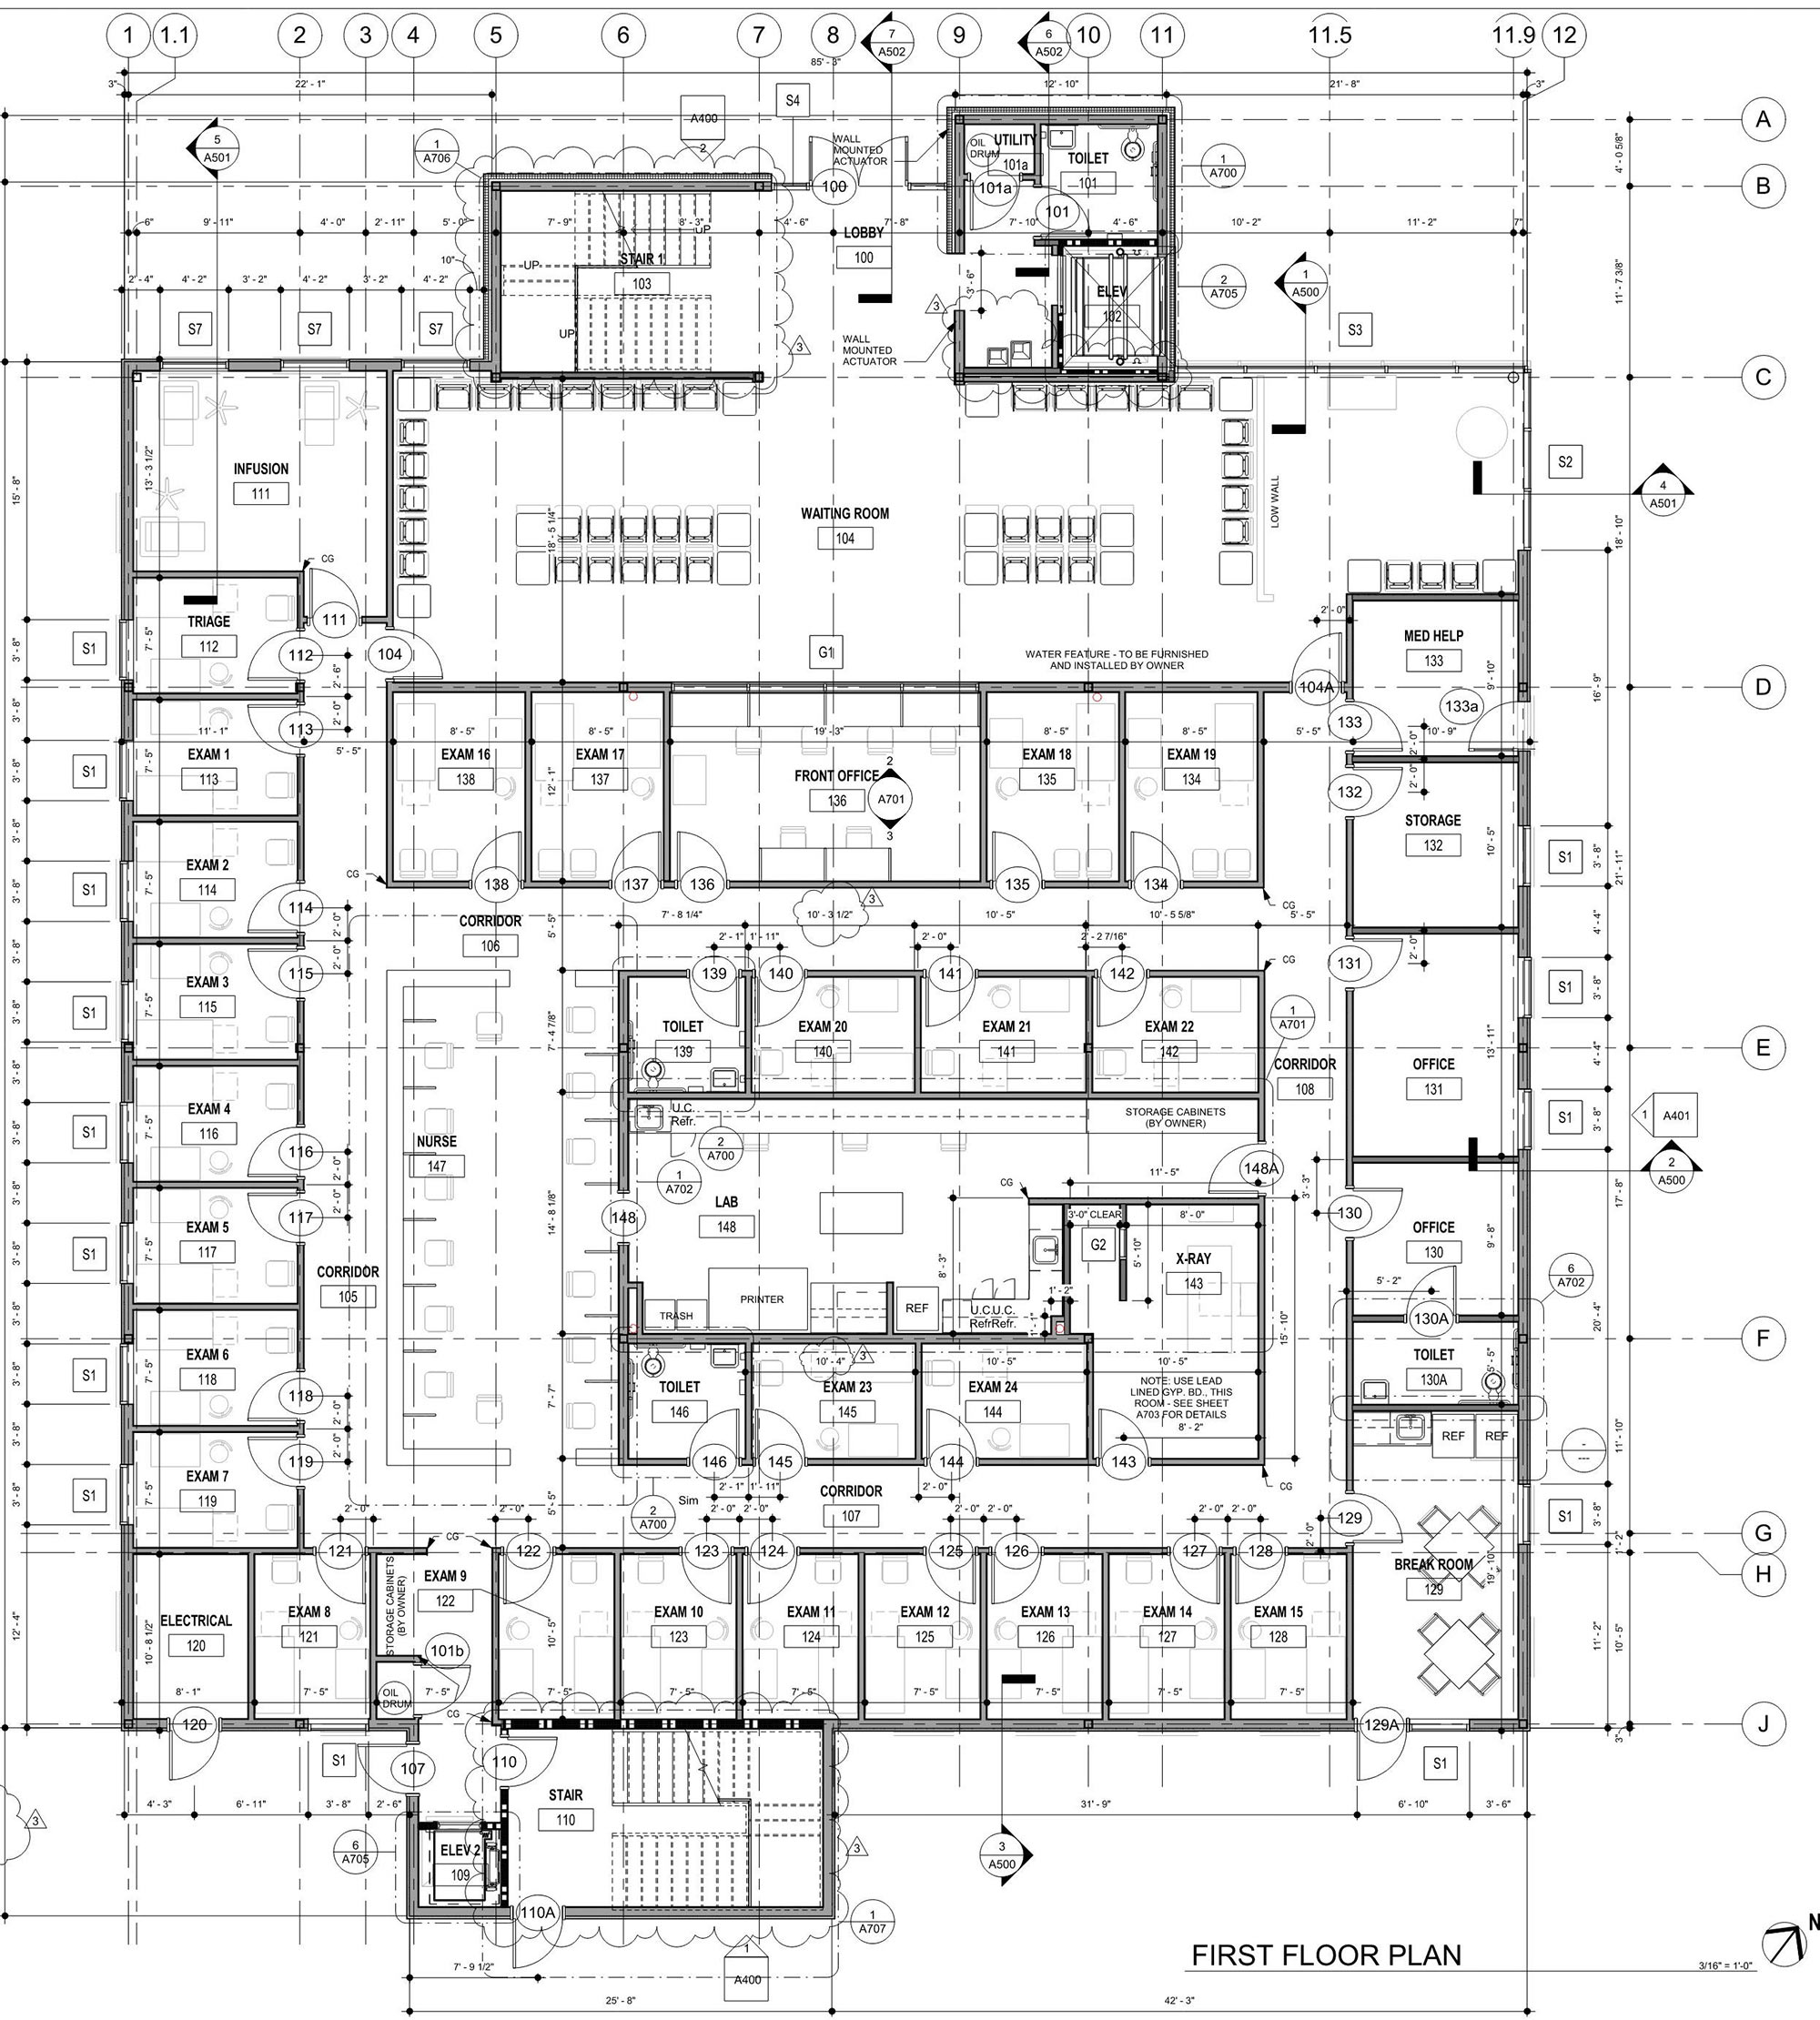 Site Plan for Total Care 280's New Medical Office